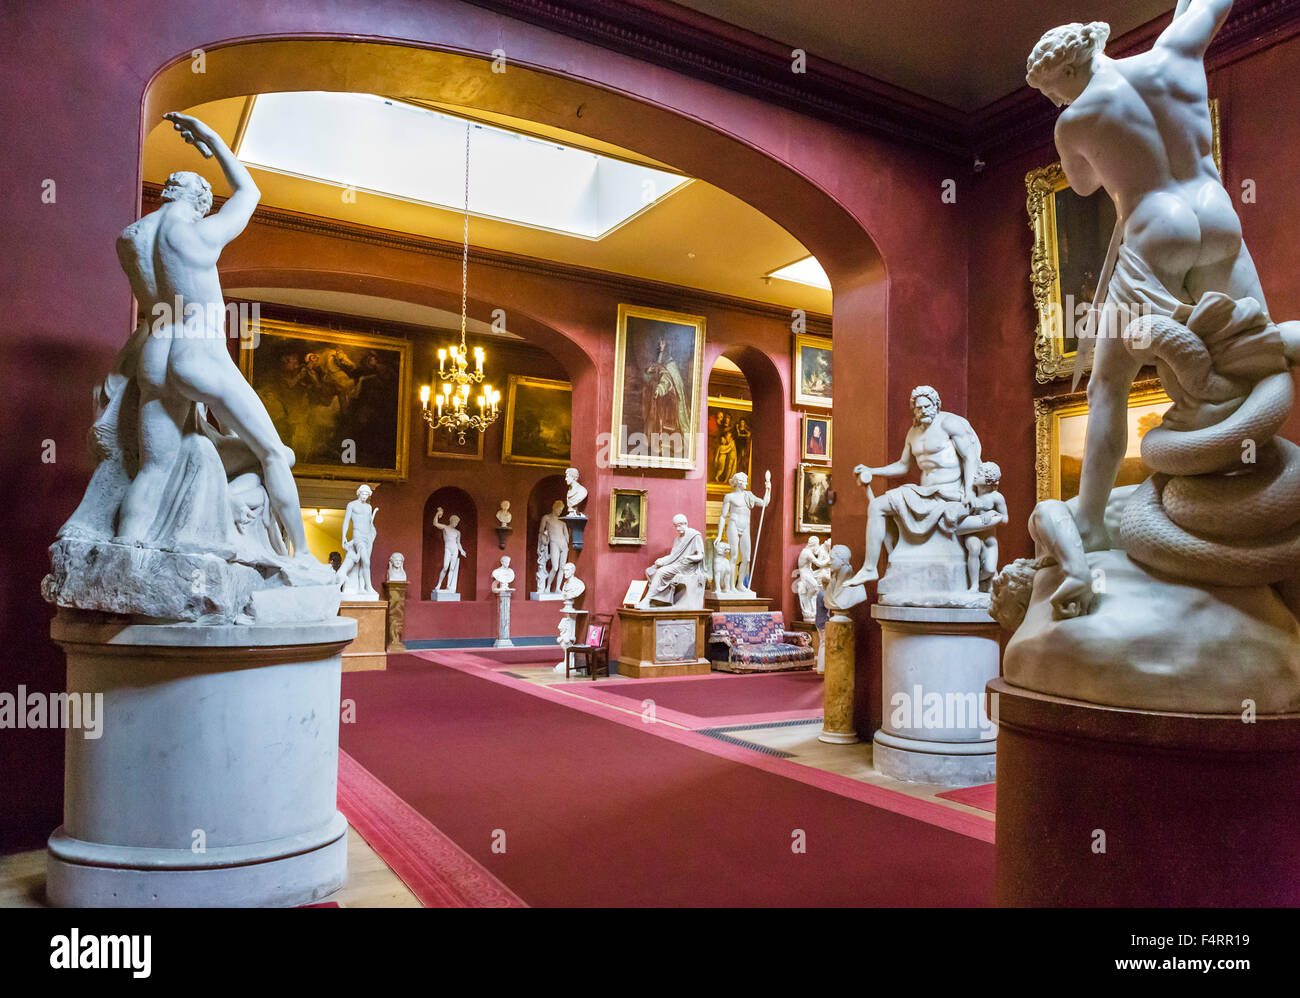 The North Gallery at Petworth House, West Sussex, England, UK - Stock Image